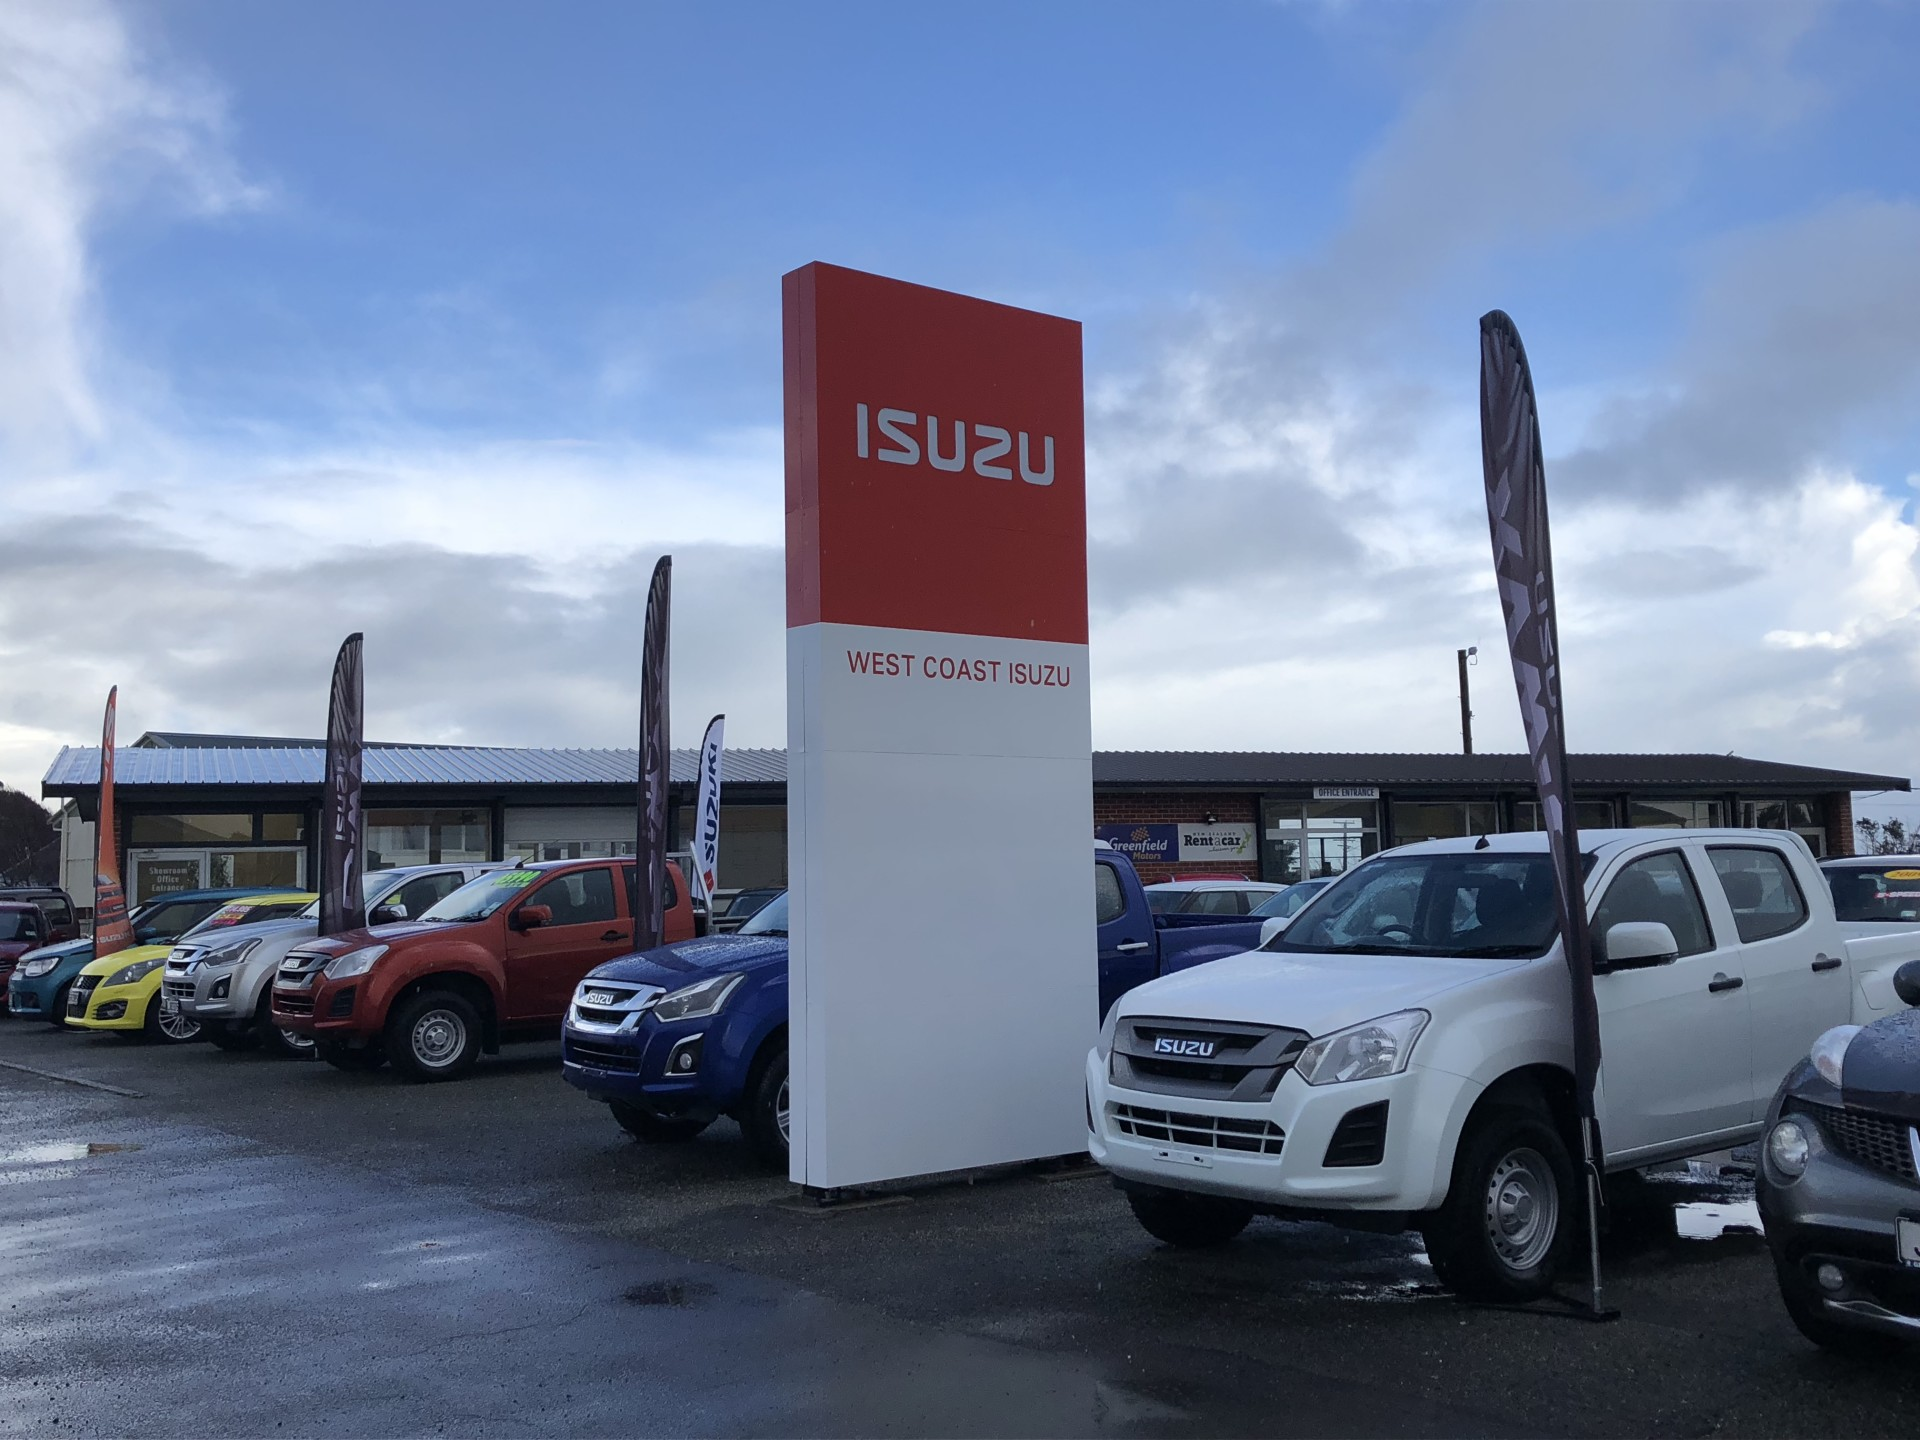 hight resolution of west coast isuzu greenfield motors is the isuzu dealer for the west coast supplying vehicles parts and service we have a large number of new cars and